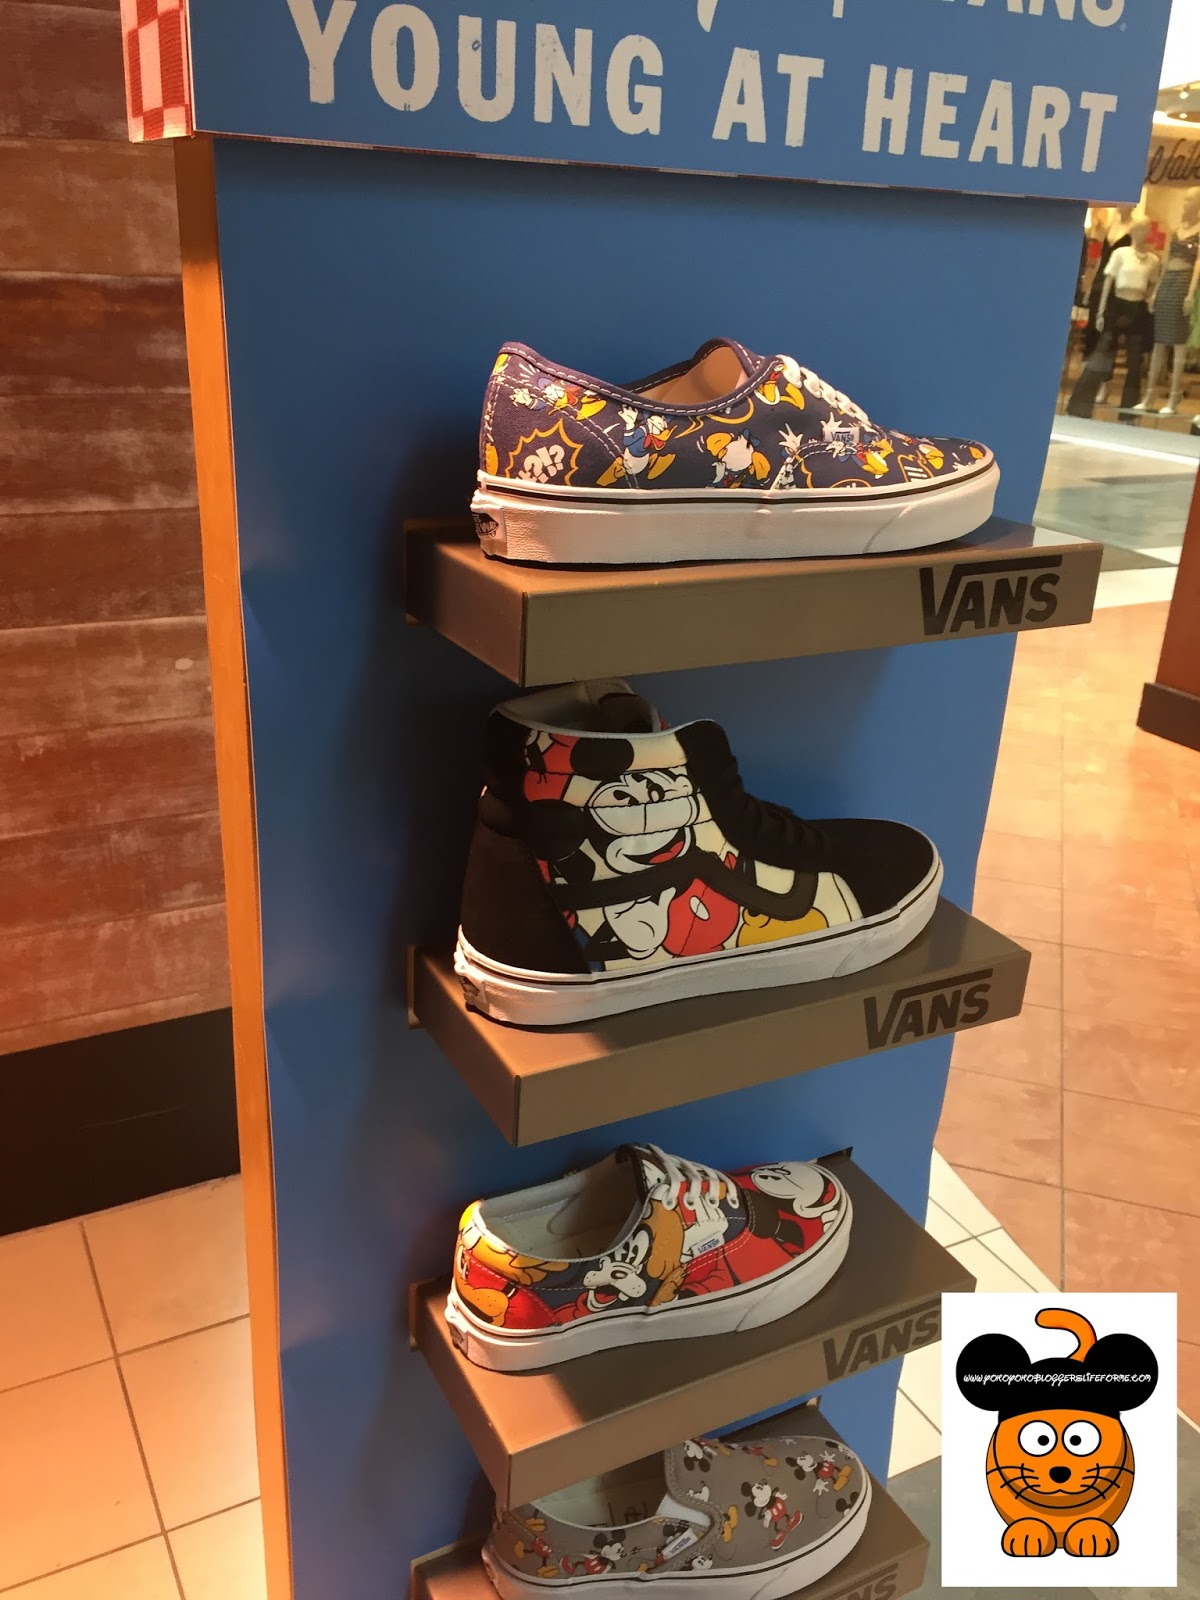 ed375bfb10fa48 Buy where to buy vans shoes in stores